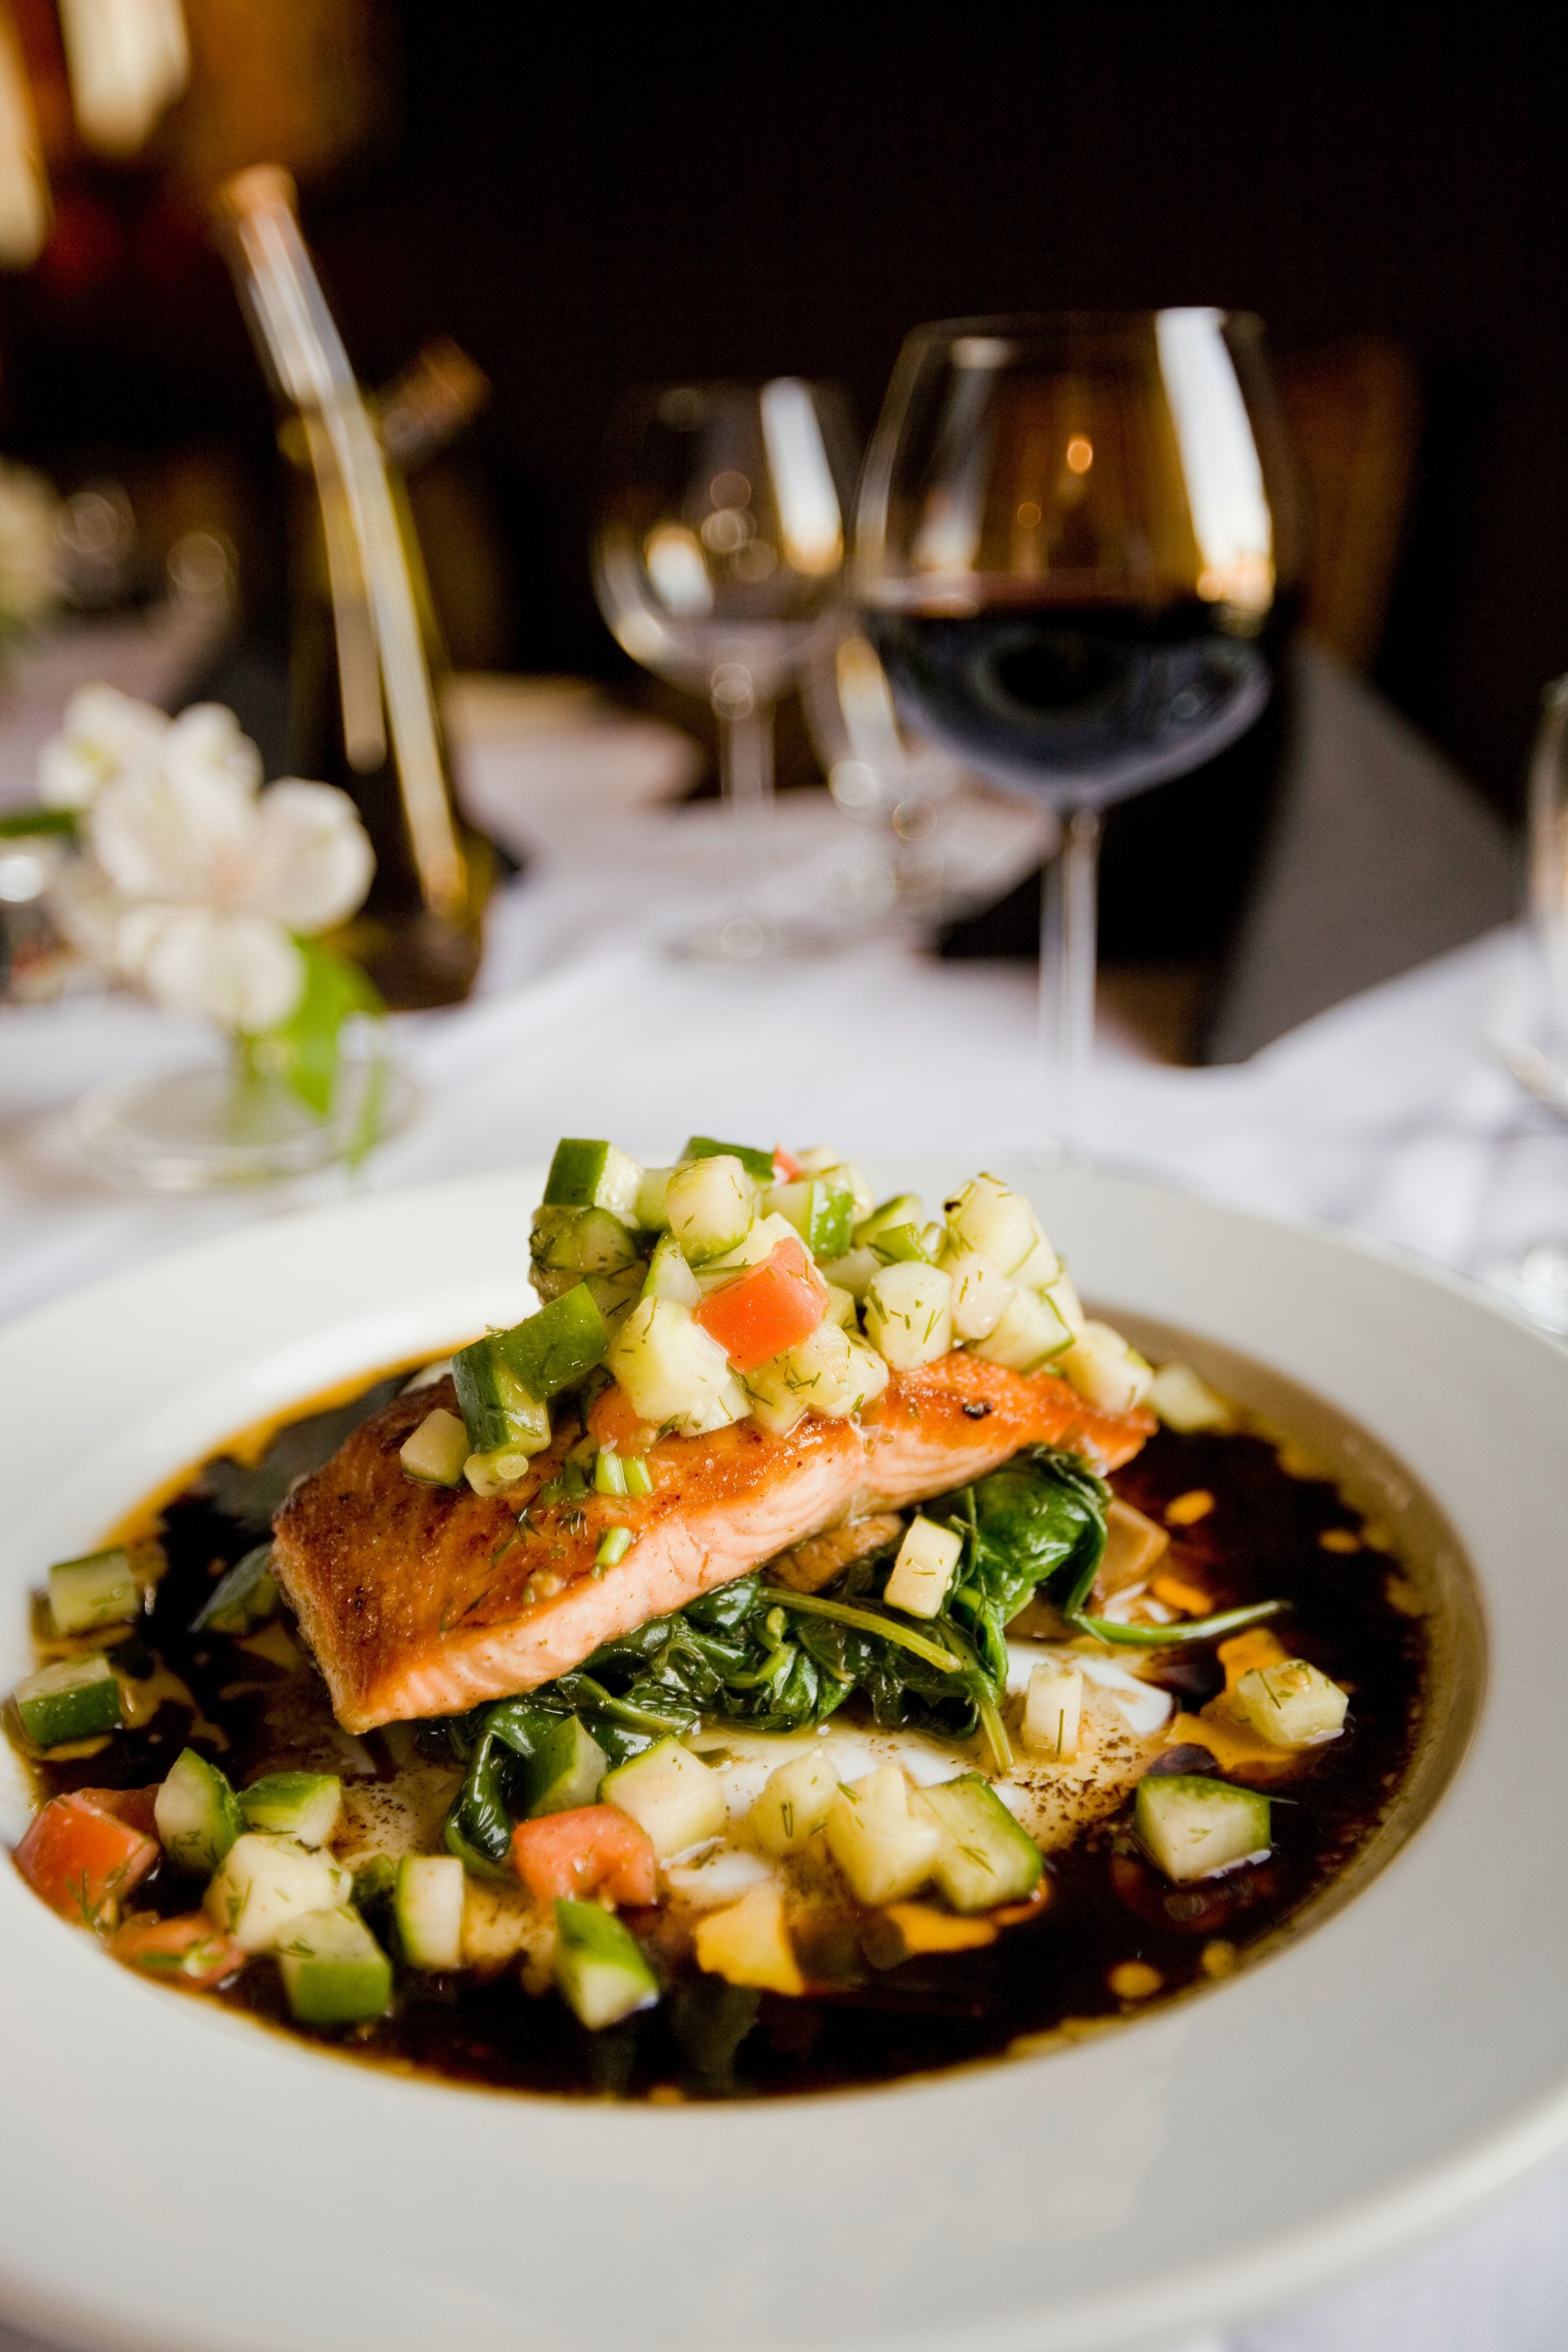 Restaurant salmon dinner casey lee awj7srvivxo unsplash